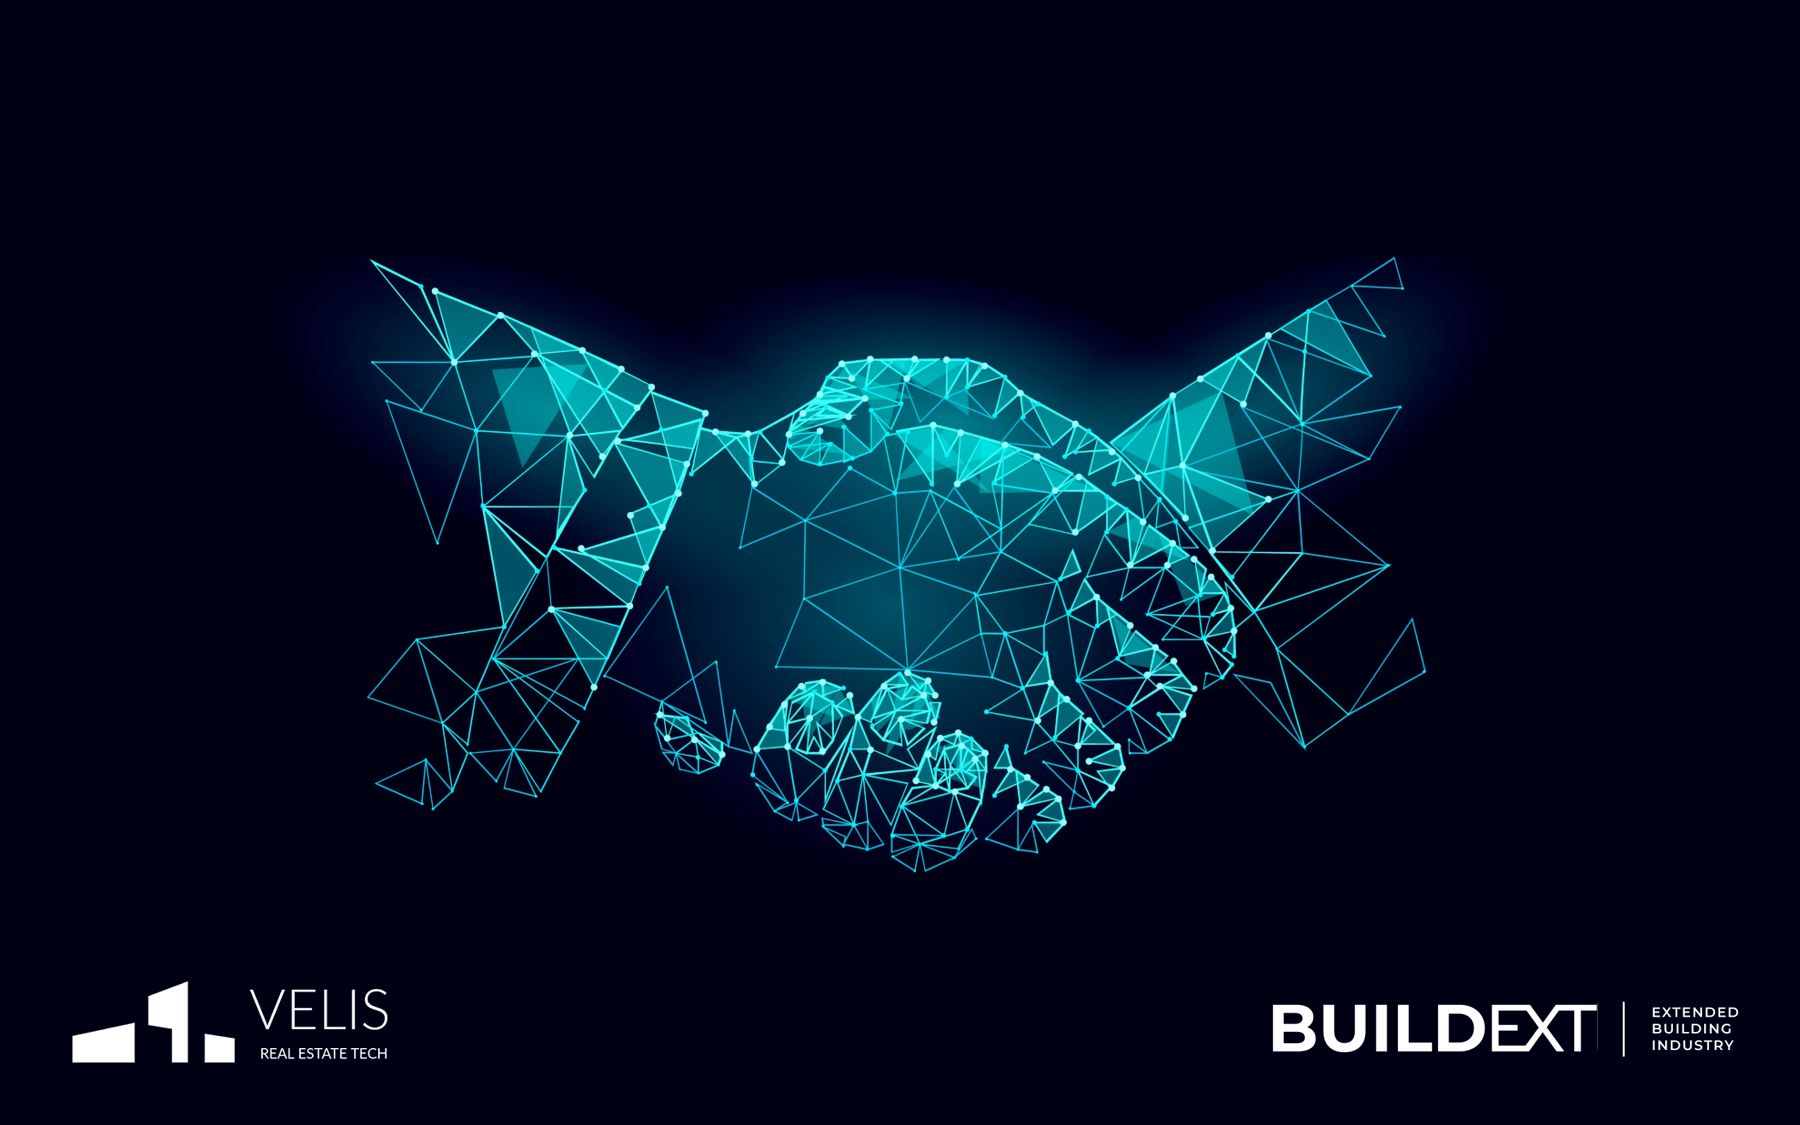 velis-buildext-partnership-featured-image